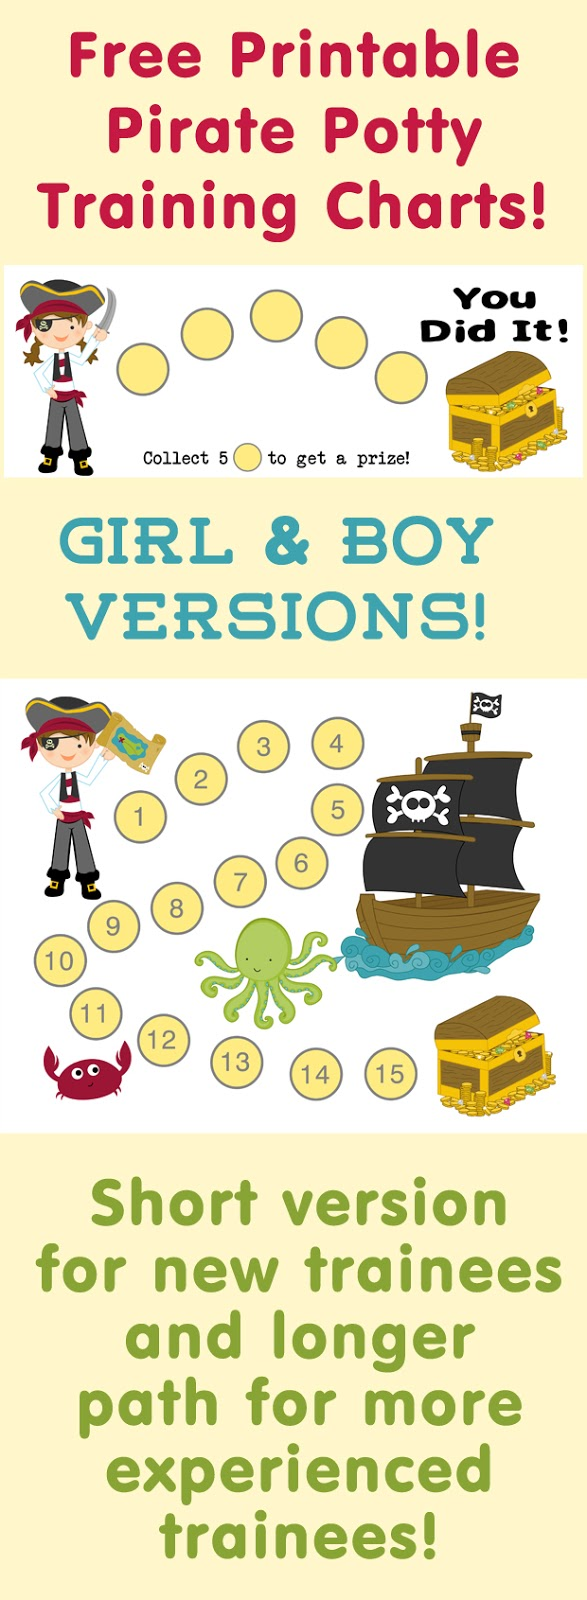 printable pirate potty training reward charts tips happiness printable pirate potty training reward charts tips